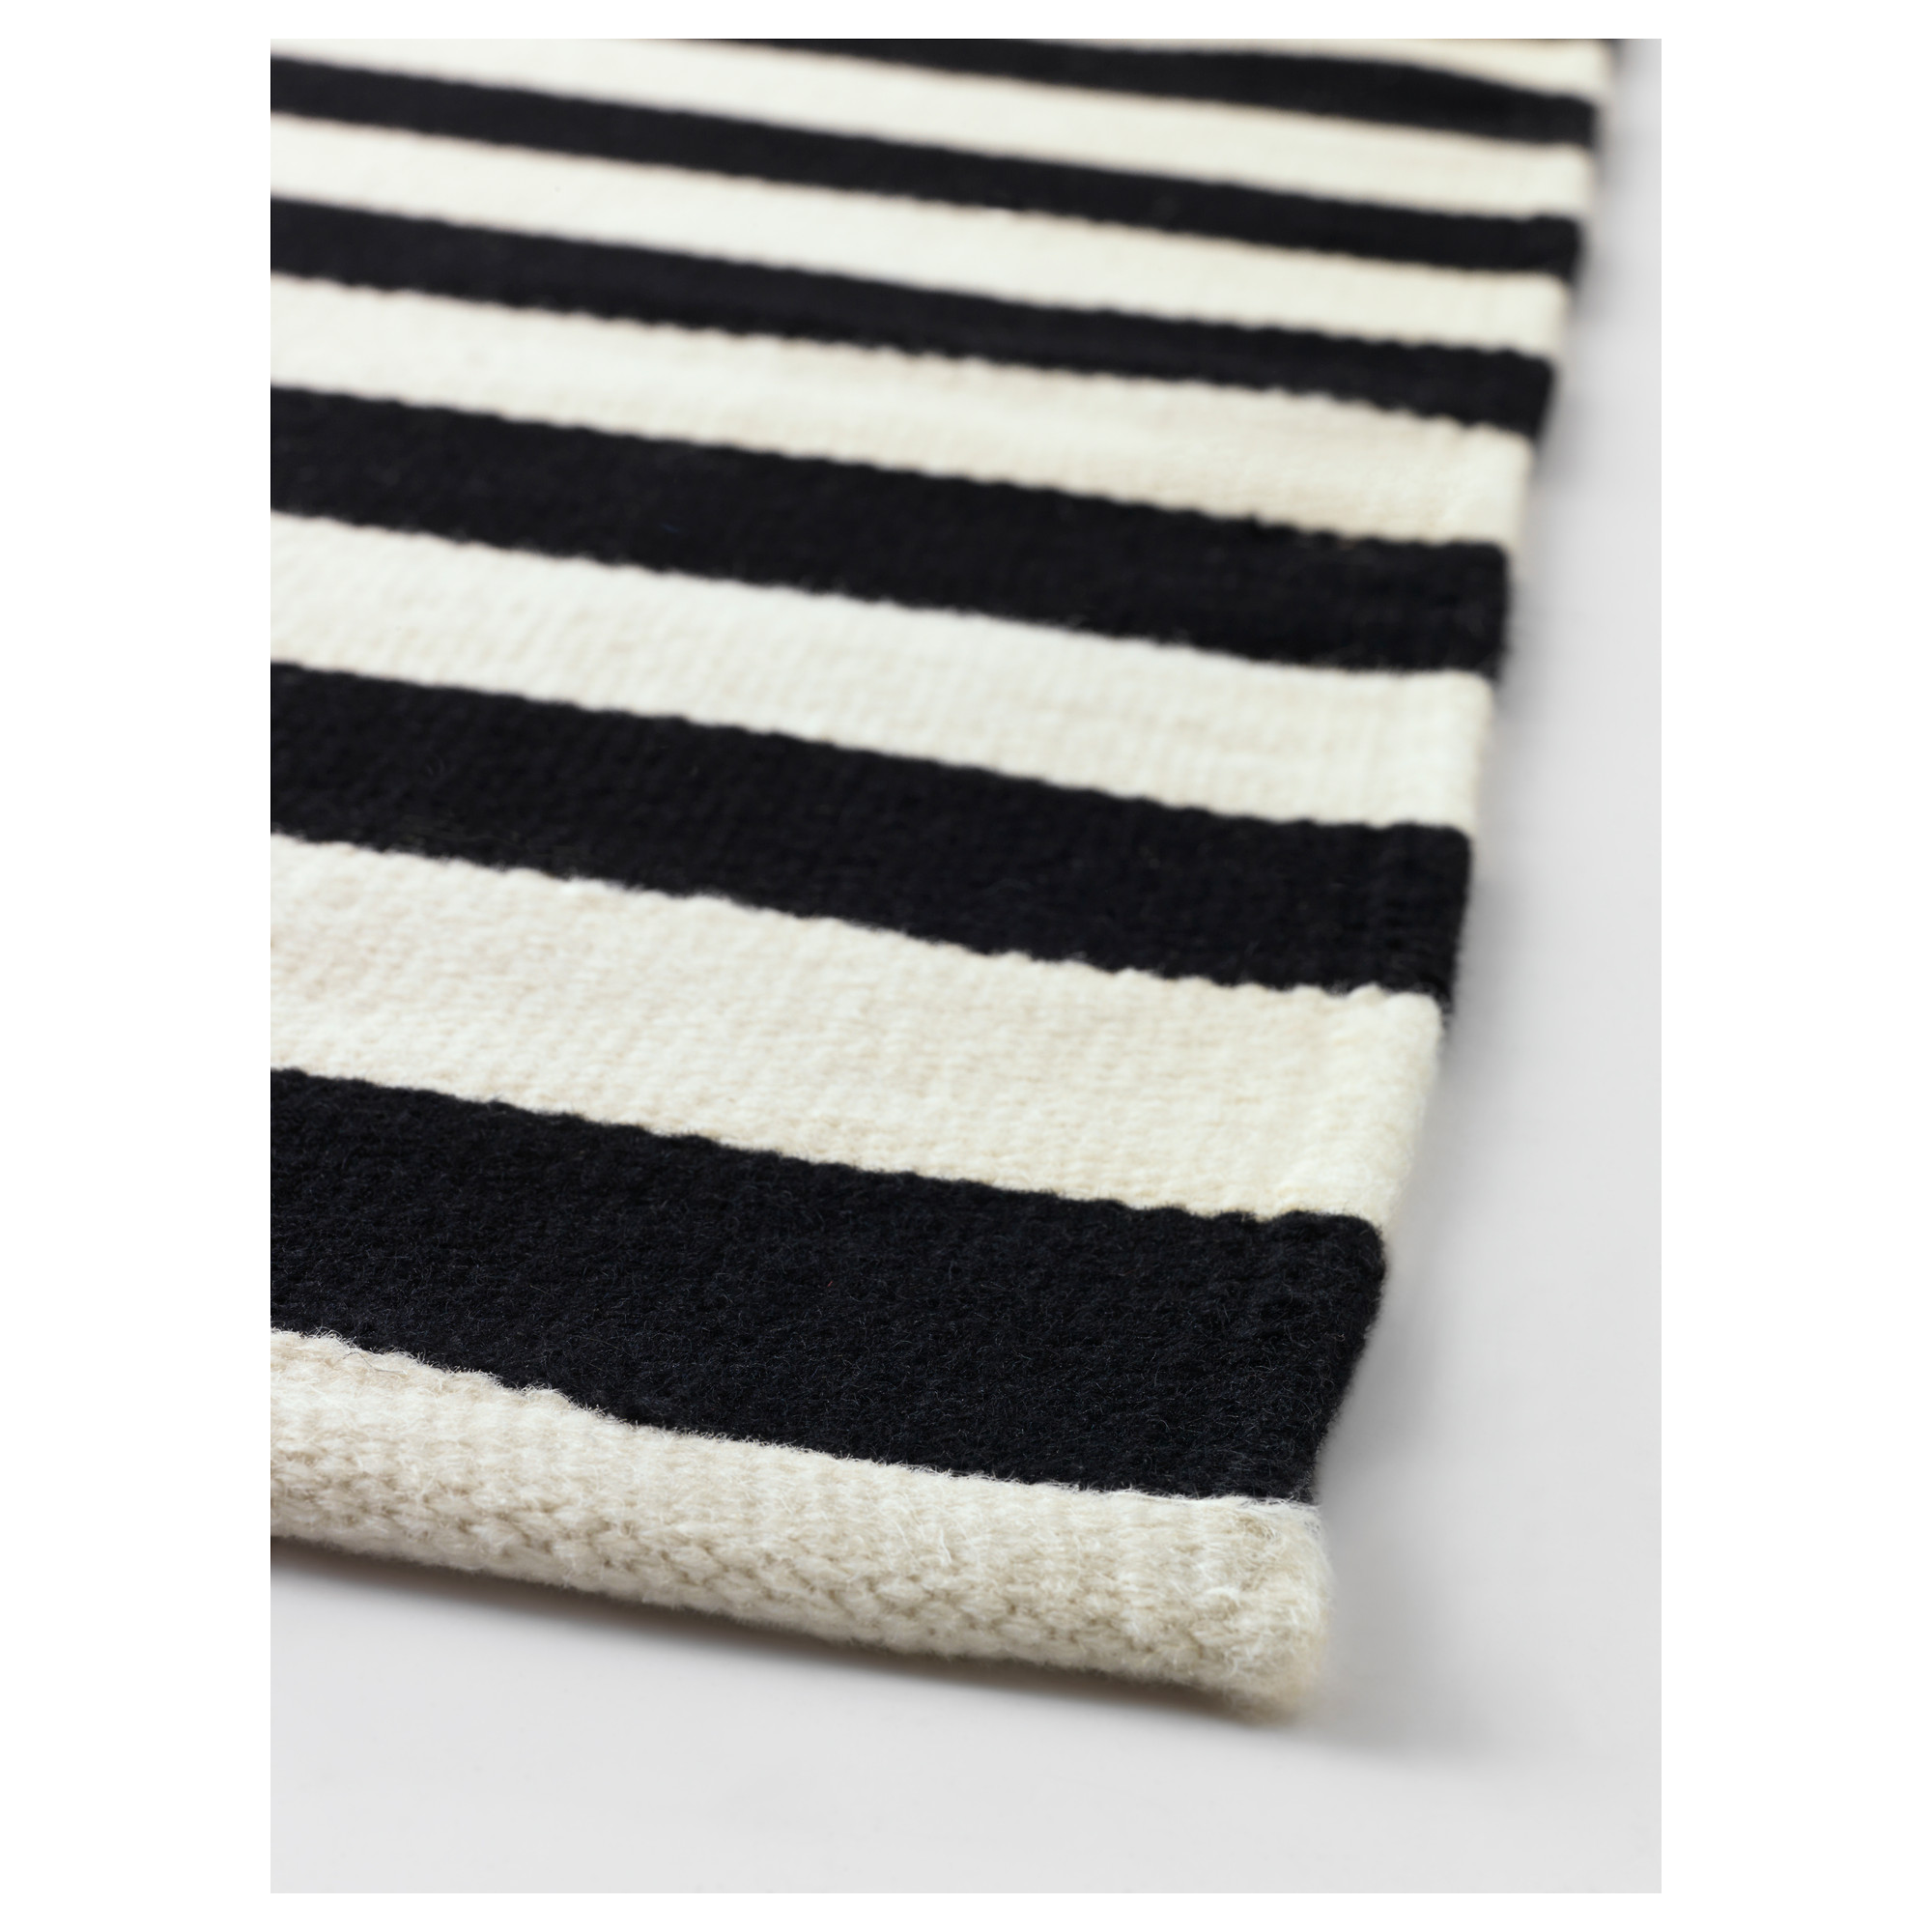 Ikea Stockholm Rug Flatwoven Black Striped Handmade Off White